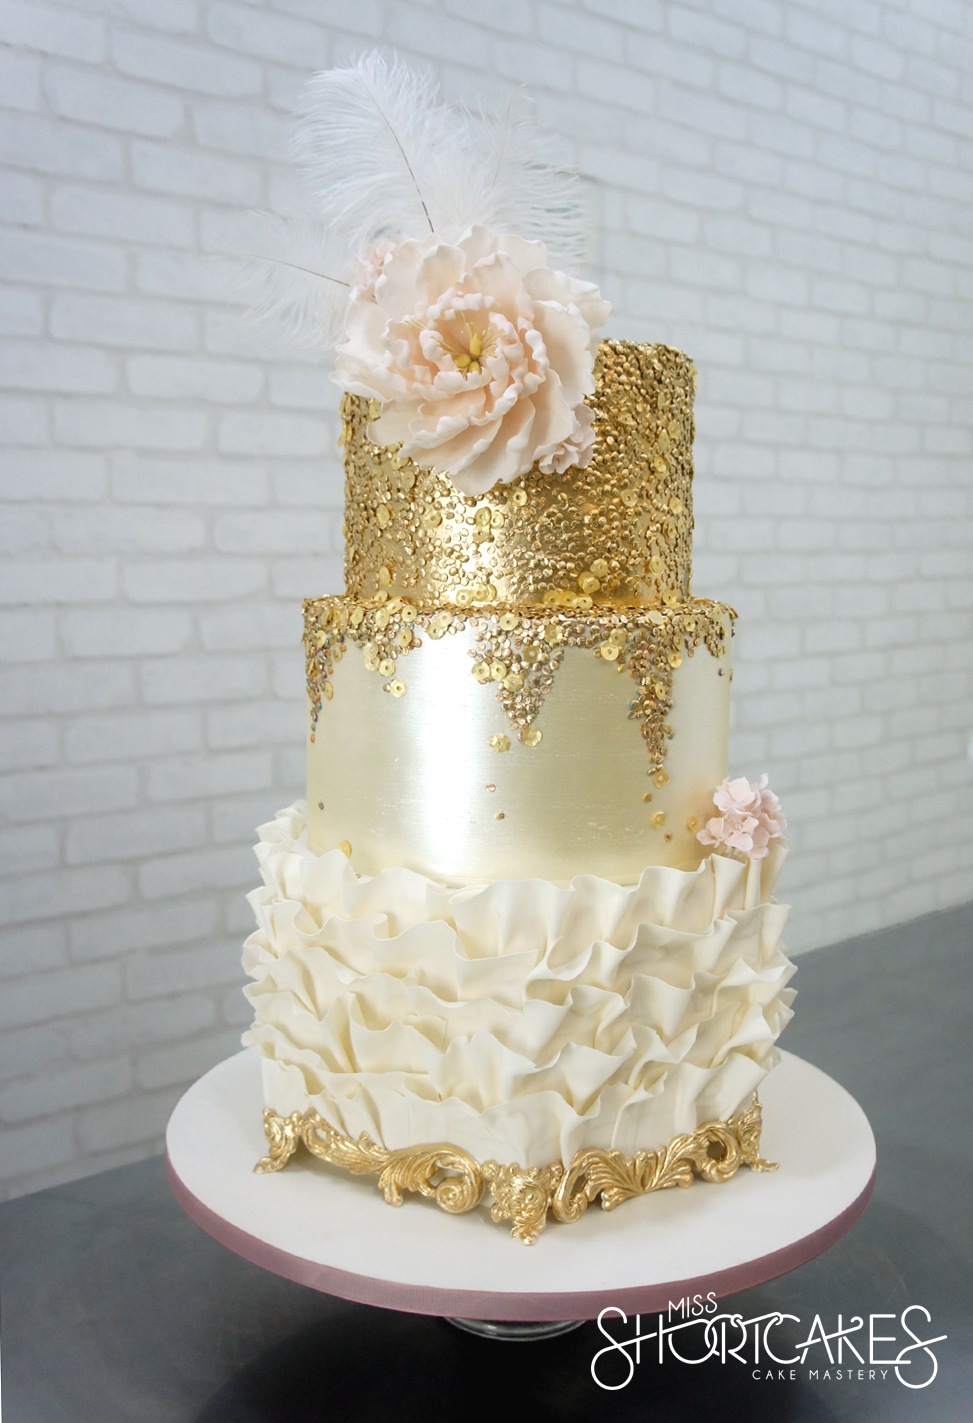 grand wedding cakes miss shortcakes 14898